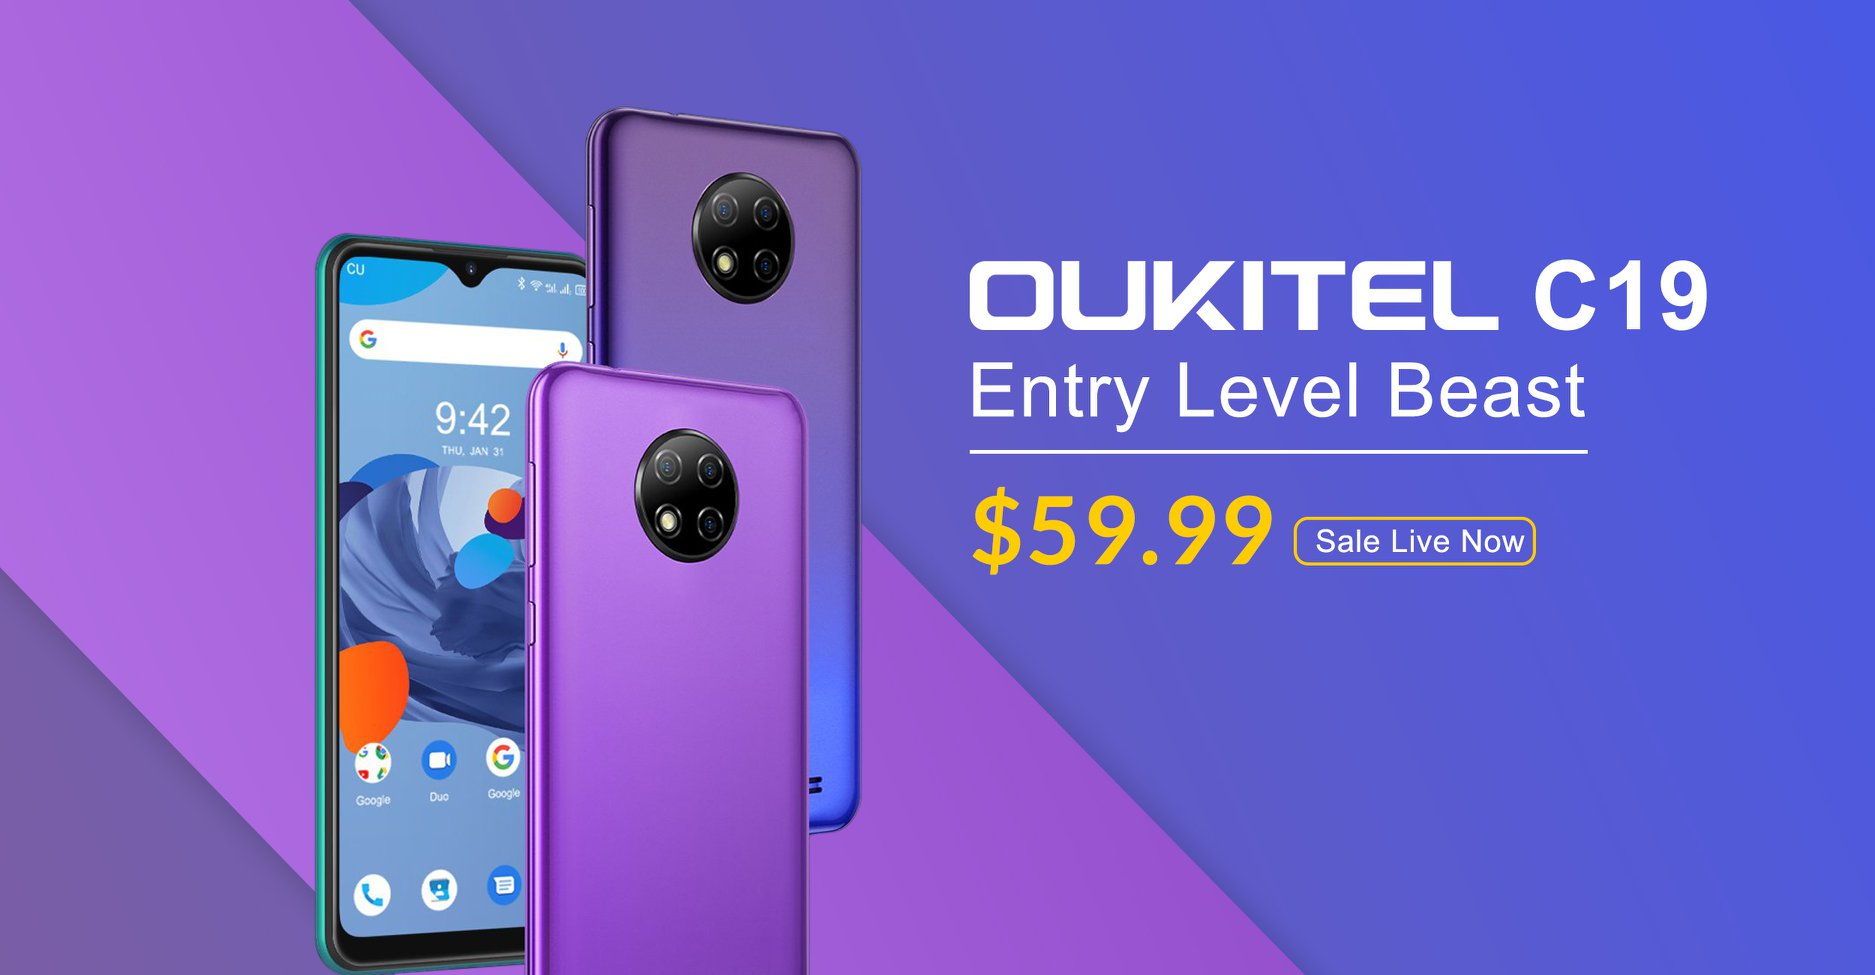 The most affordable triple camera, entry level beast #OUKITEL #C19 now available at $59.99 only.😍 C19 available in multiple colors. Now let your phone express itself. Don't miss this deal🔥...